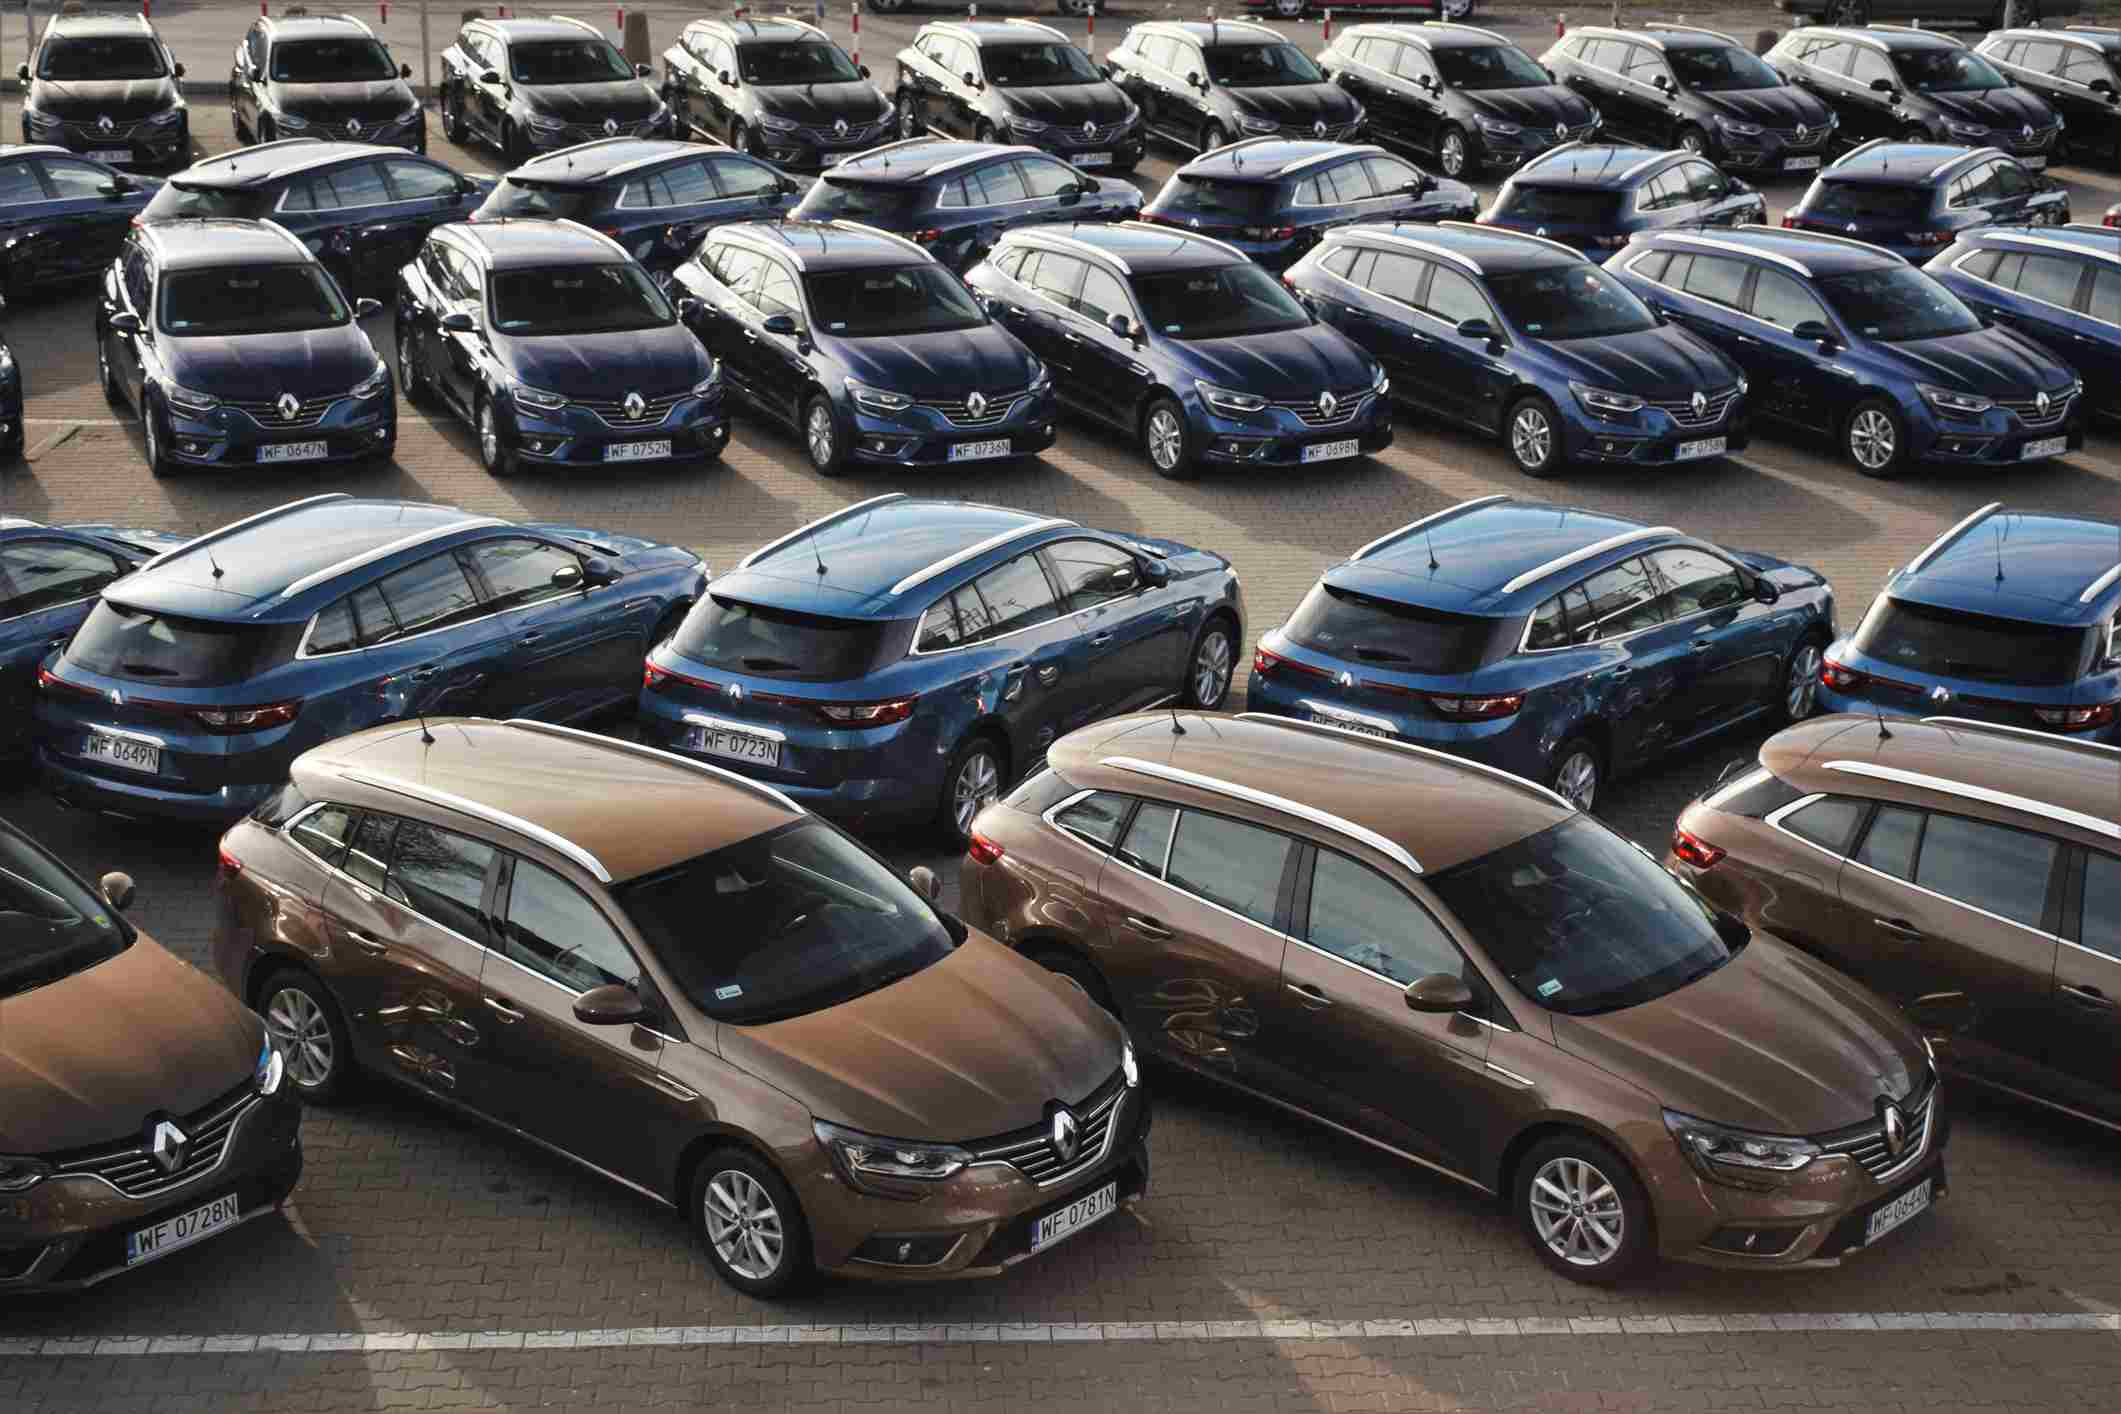 How to Quickly Get Cash for Unwanted Cars rocklea in Australia